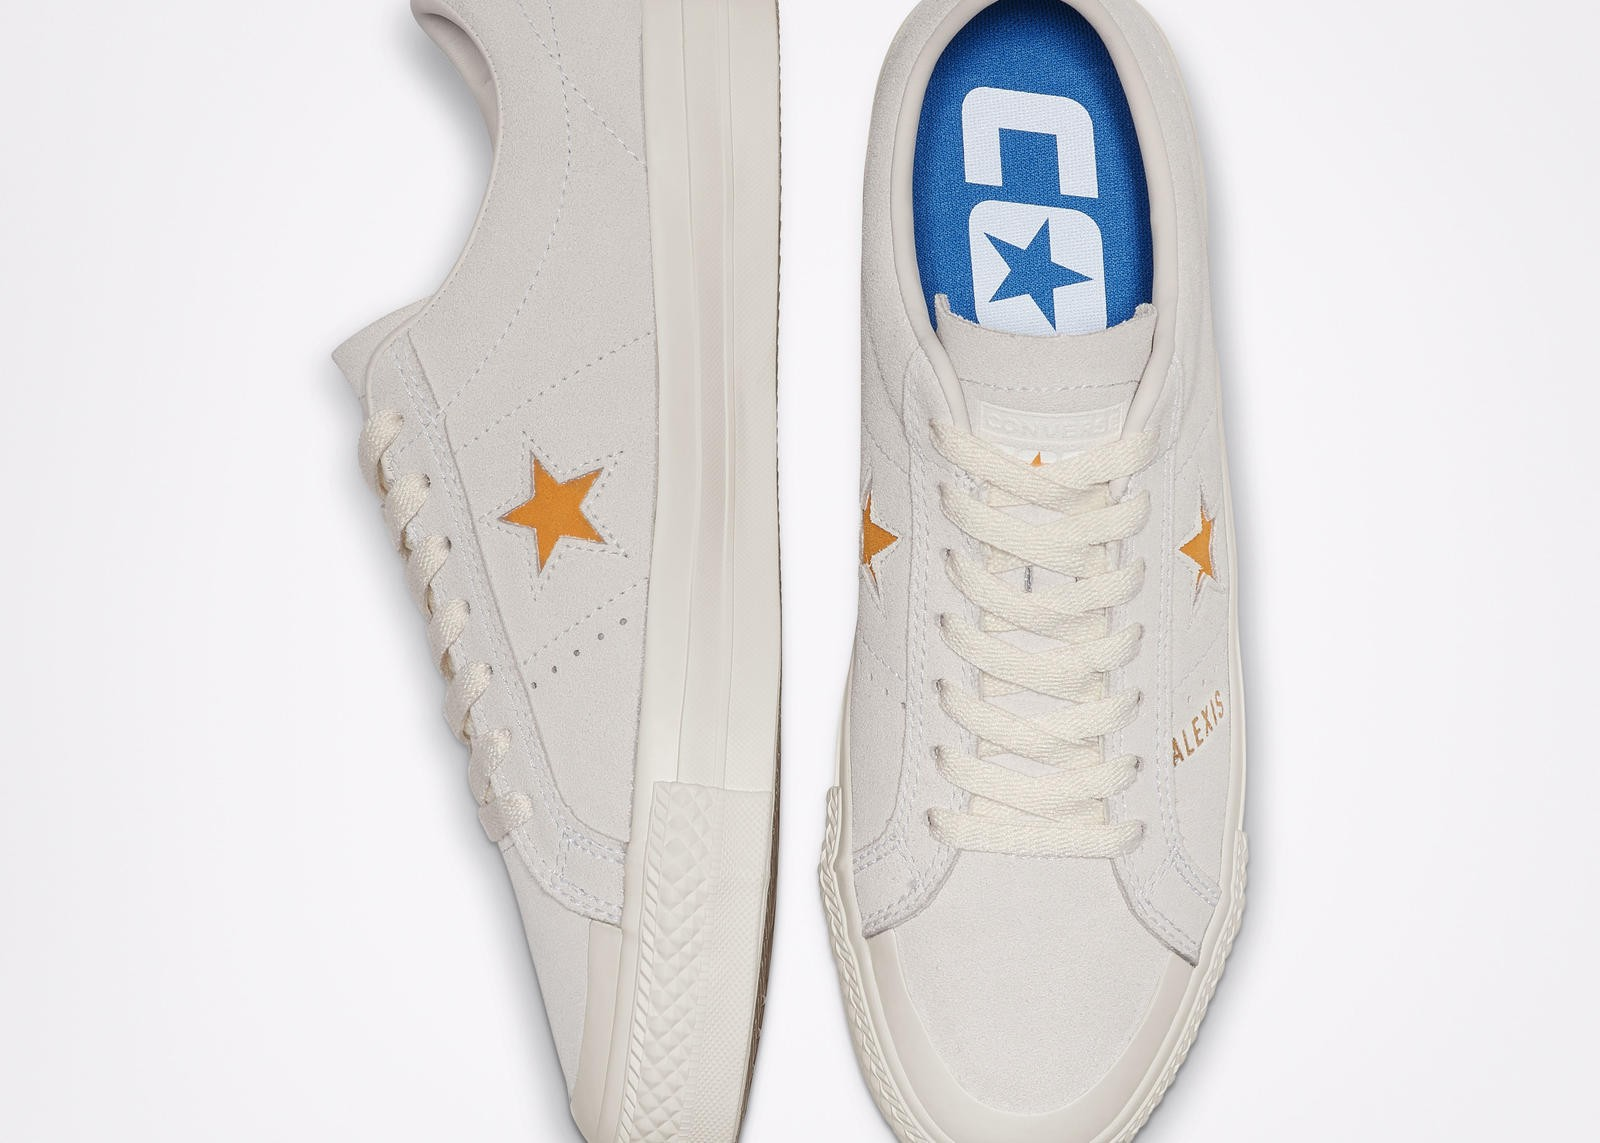 ALEXIS SABLONE'S UNISEX CONS ONE STAR PRO SHOES HAVE HER MARK ALL OVER THEM